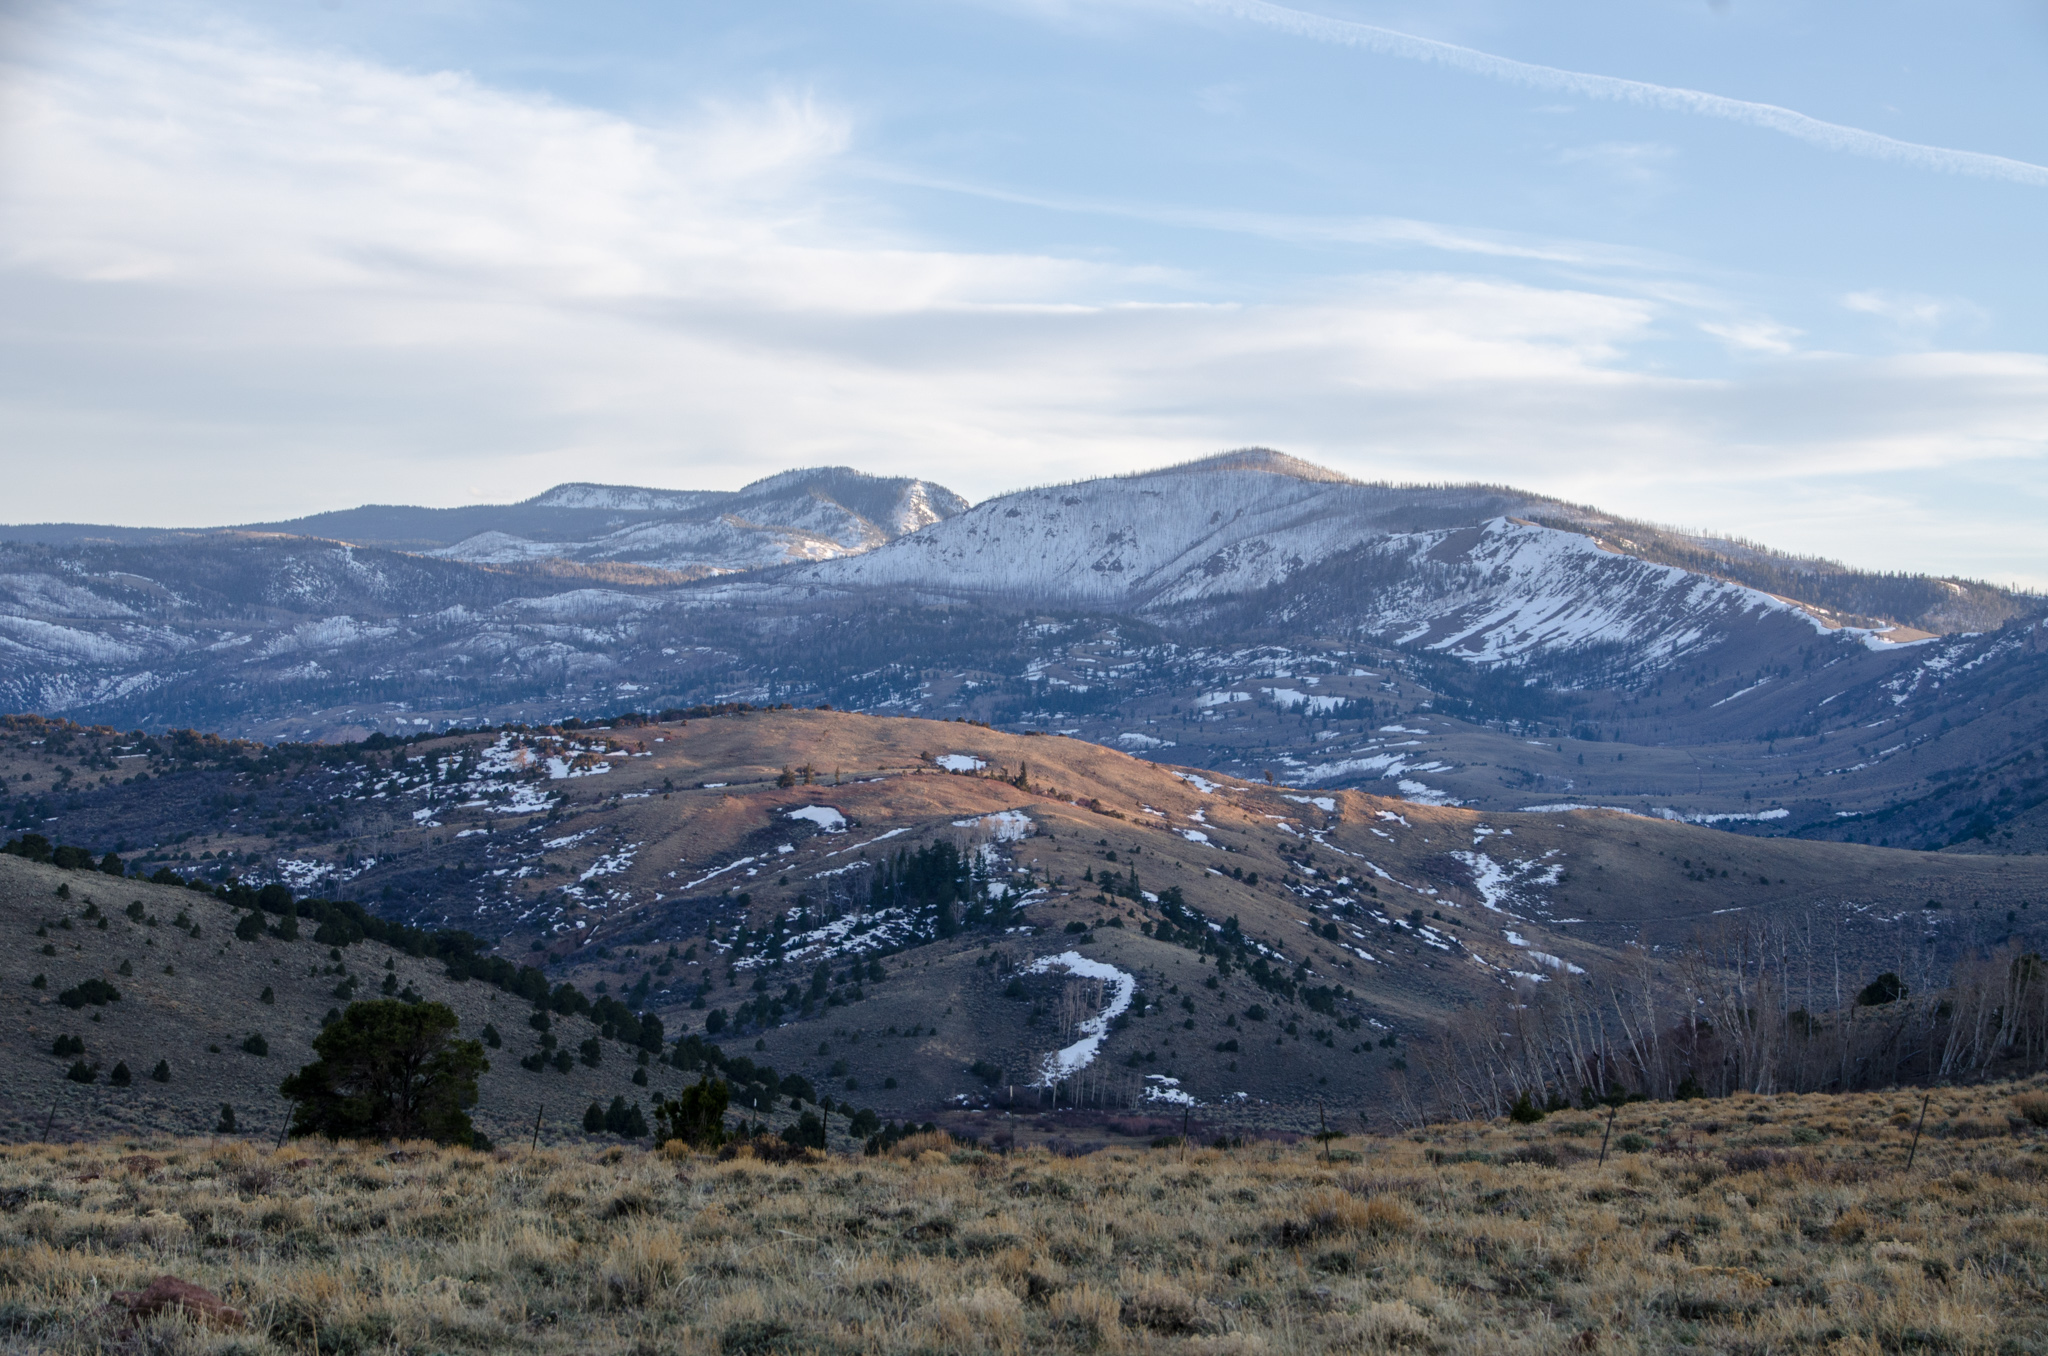 2015-03-31 - Drive through Utah - 084